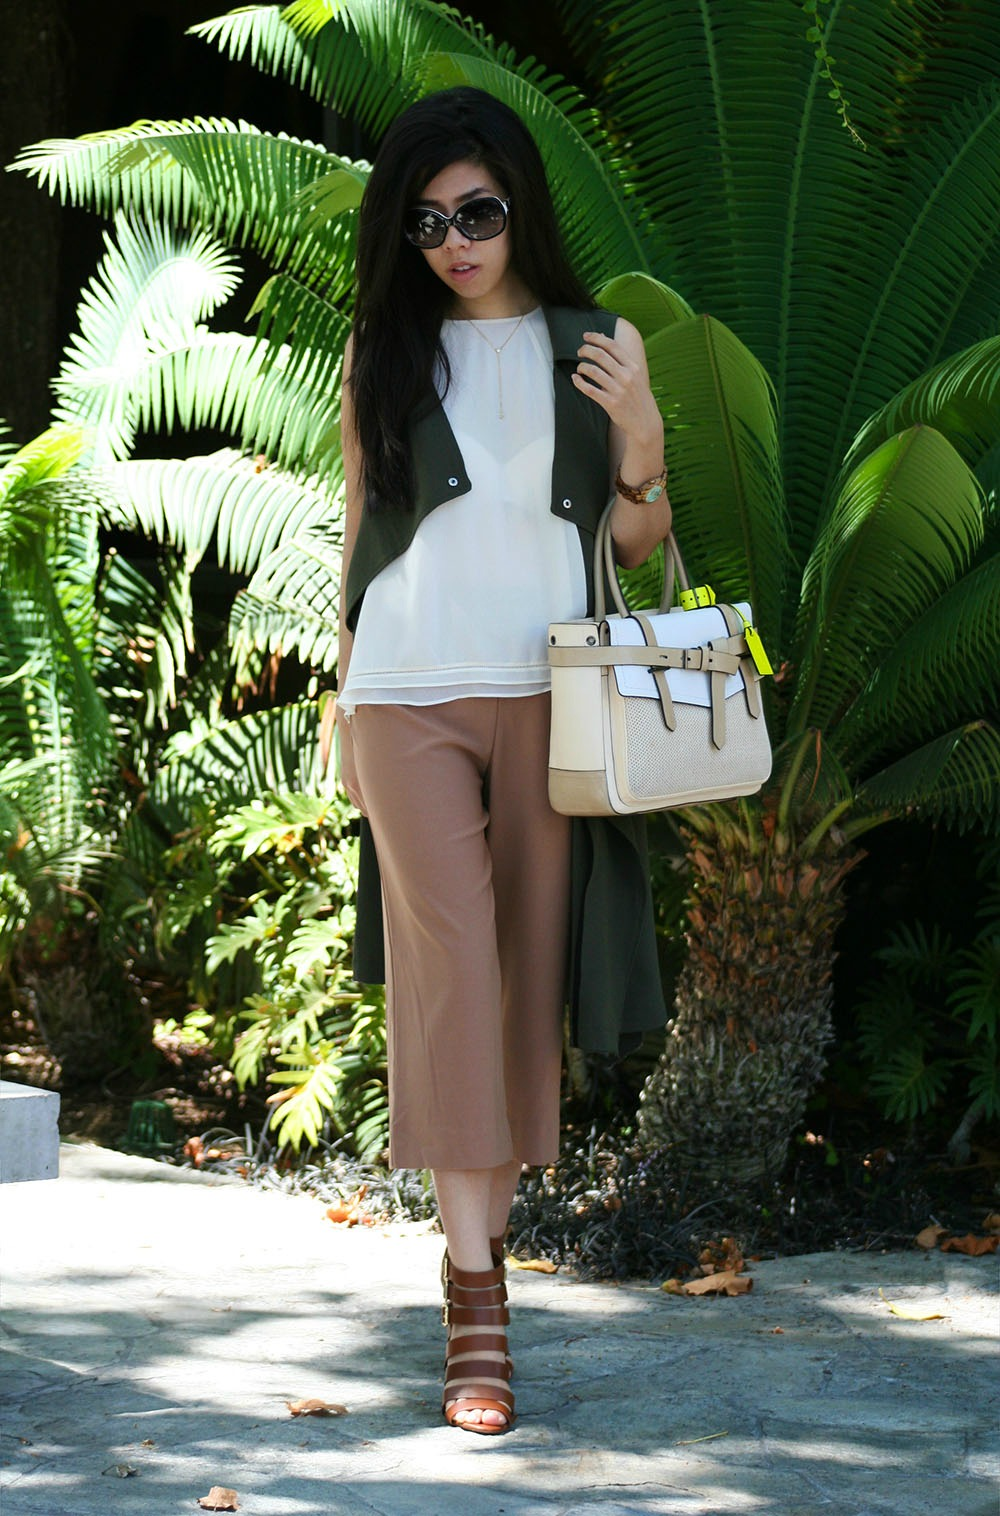 Beige Culottes _ How to Make Forever 21 Look Expensive_College Fashion _UCSD Fashion Blogger_Adrienne Nguyen_Invictus